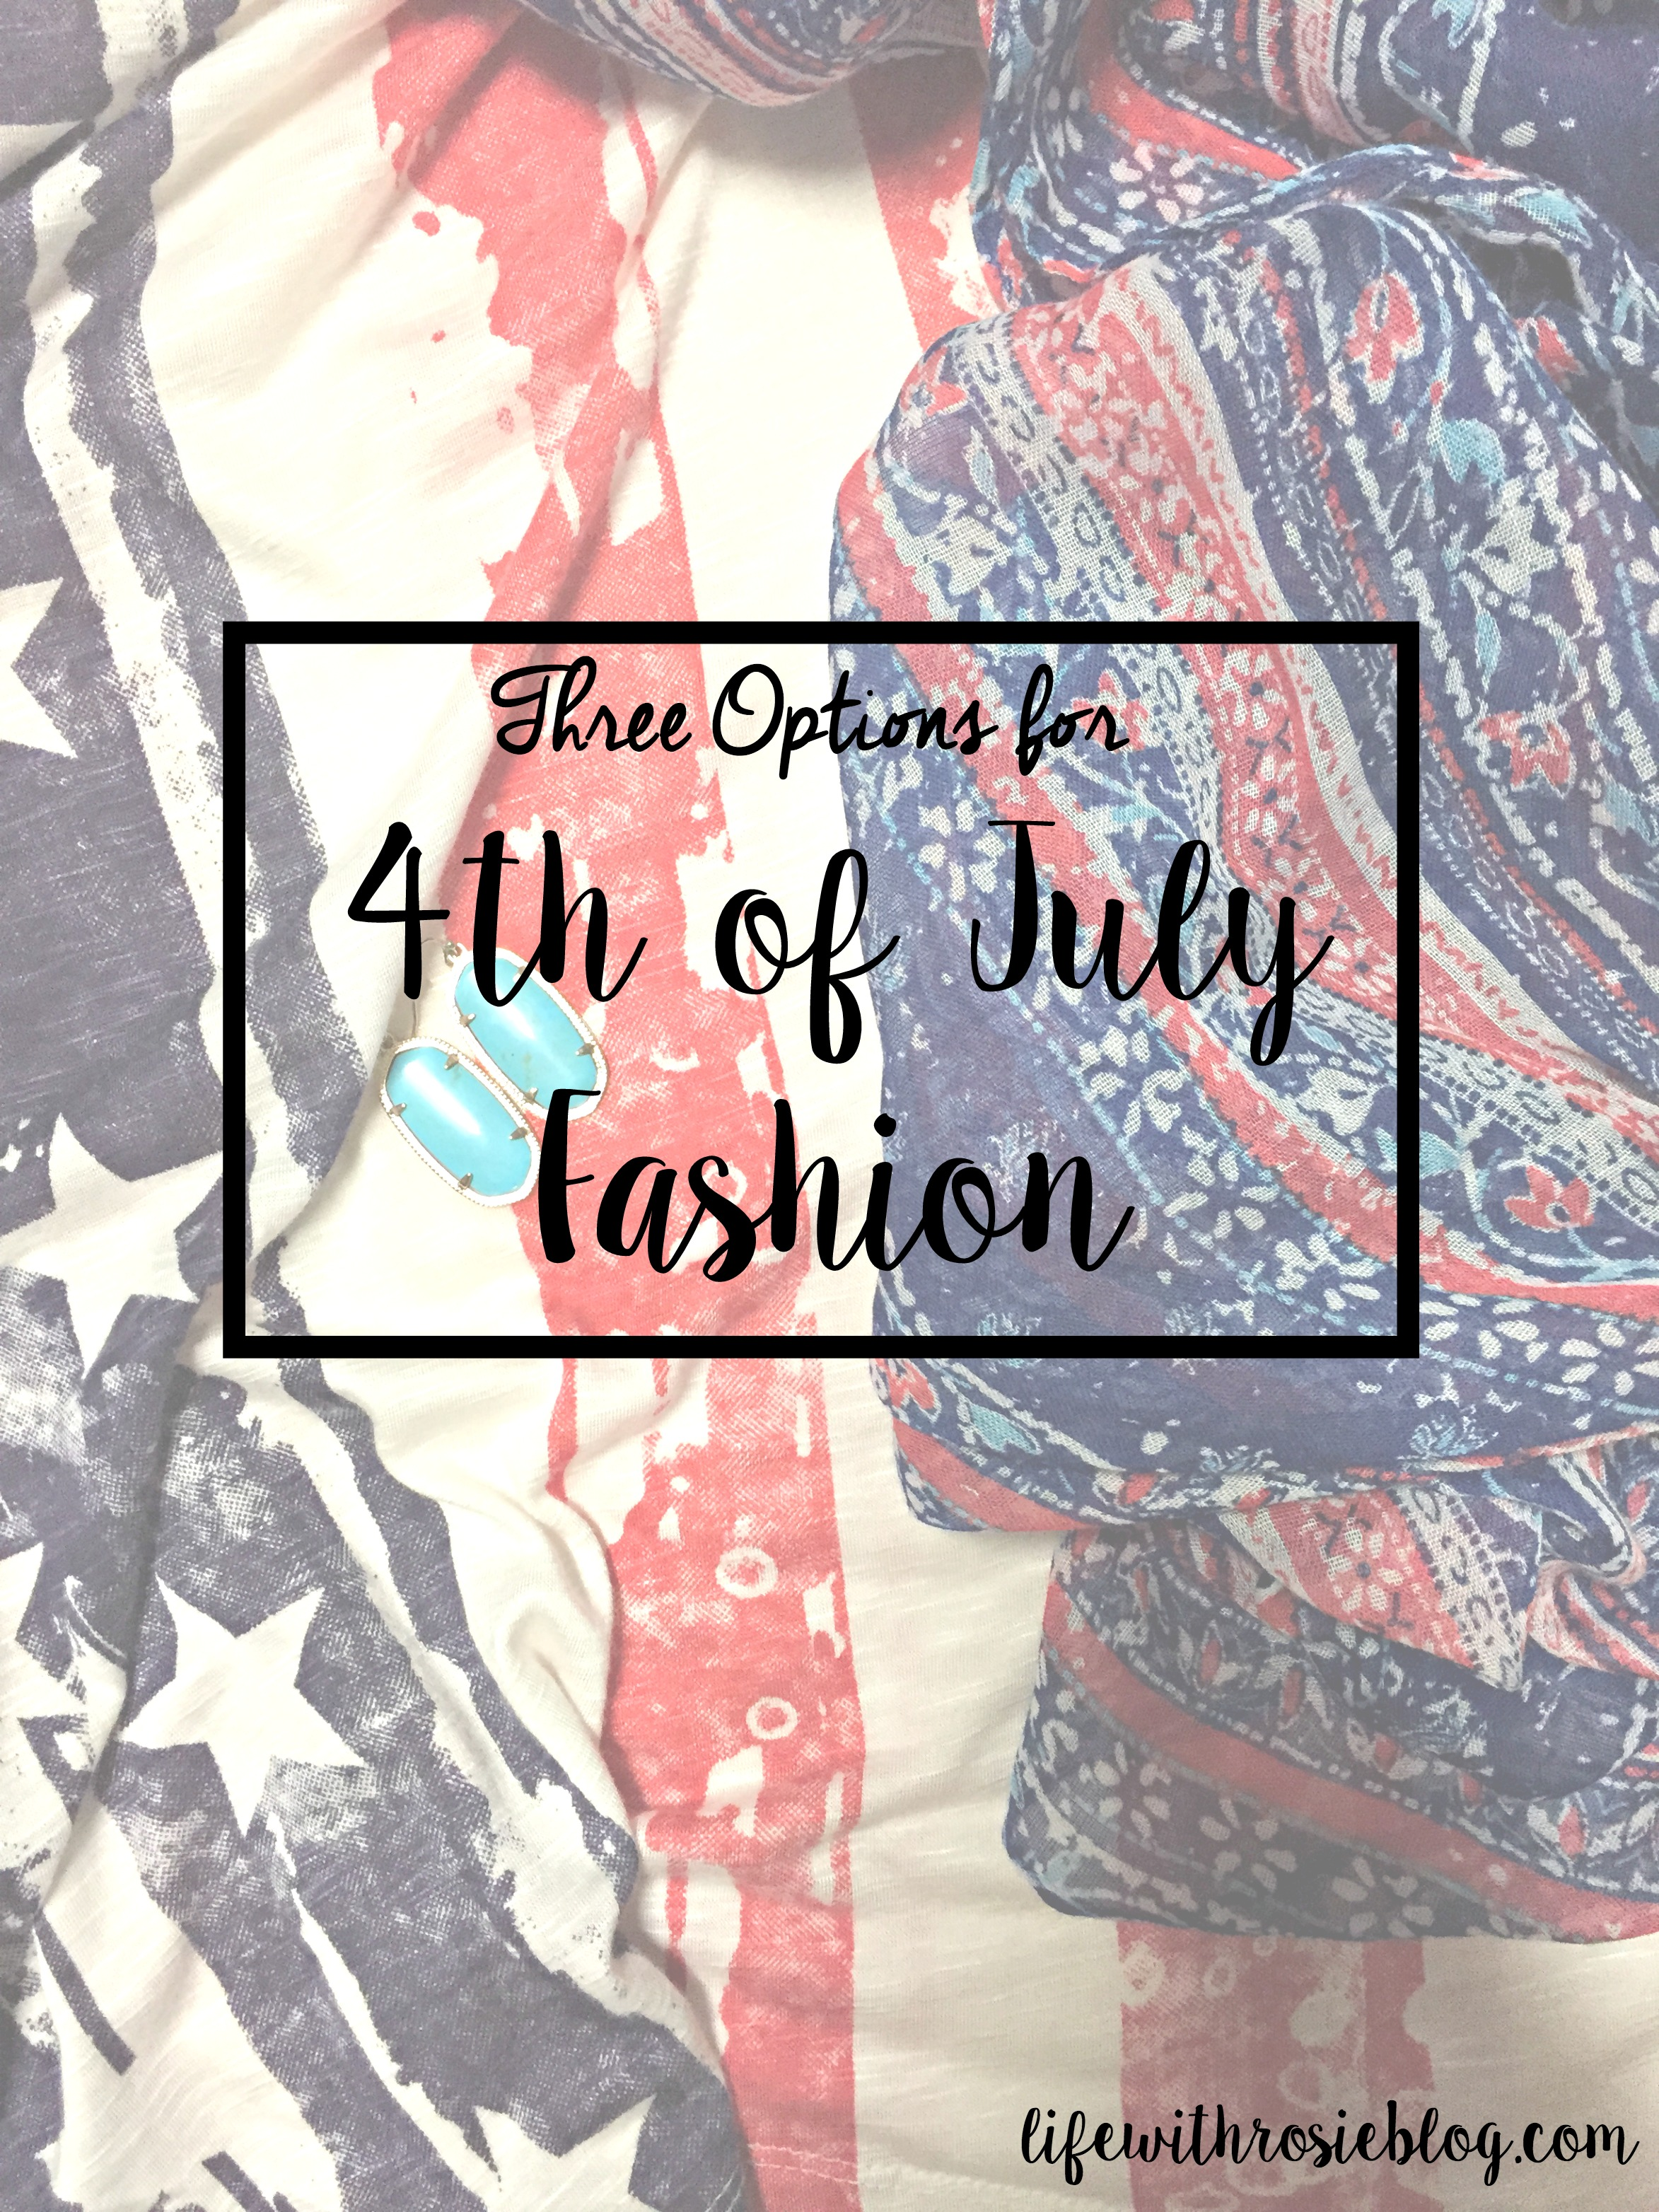 Three Options for 4th of July Fashion // Life with Rosie